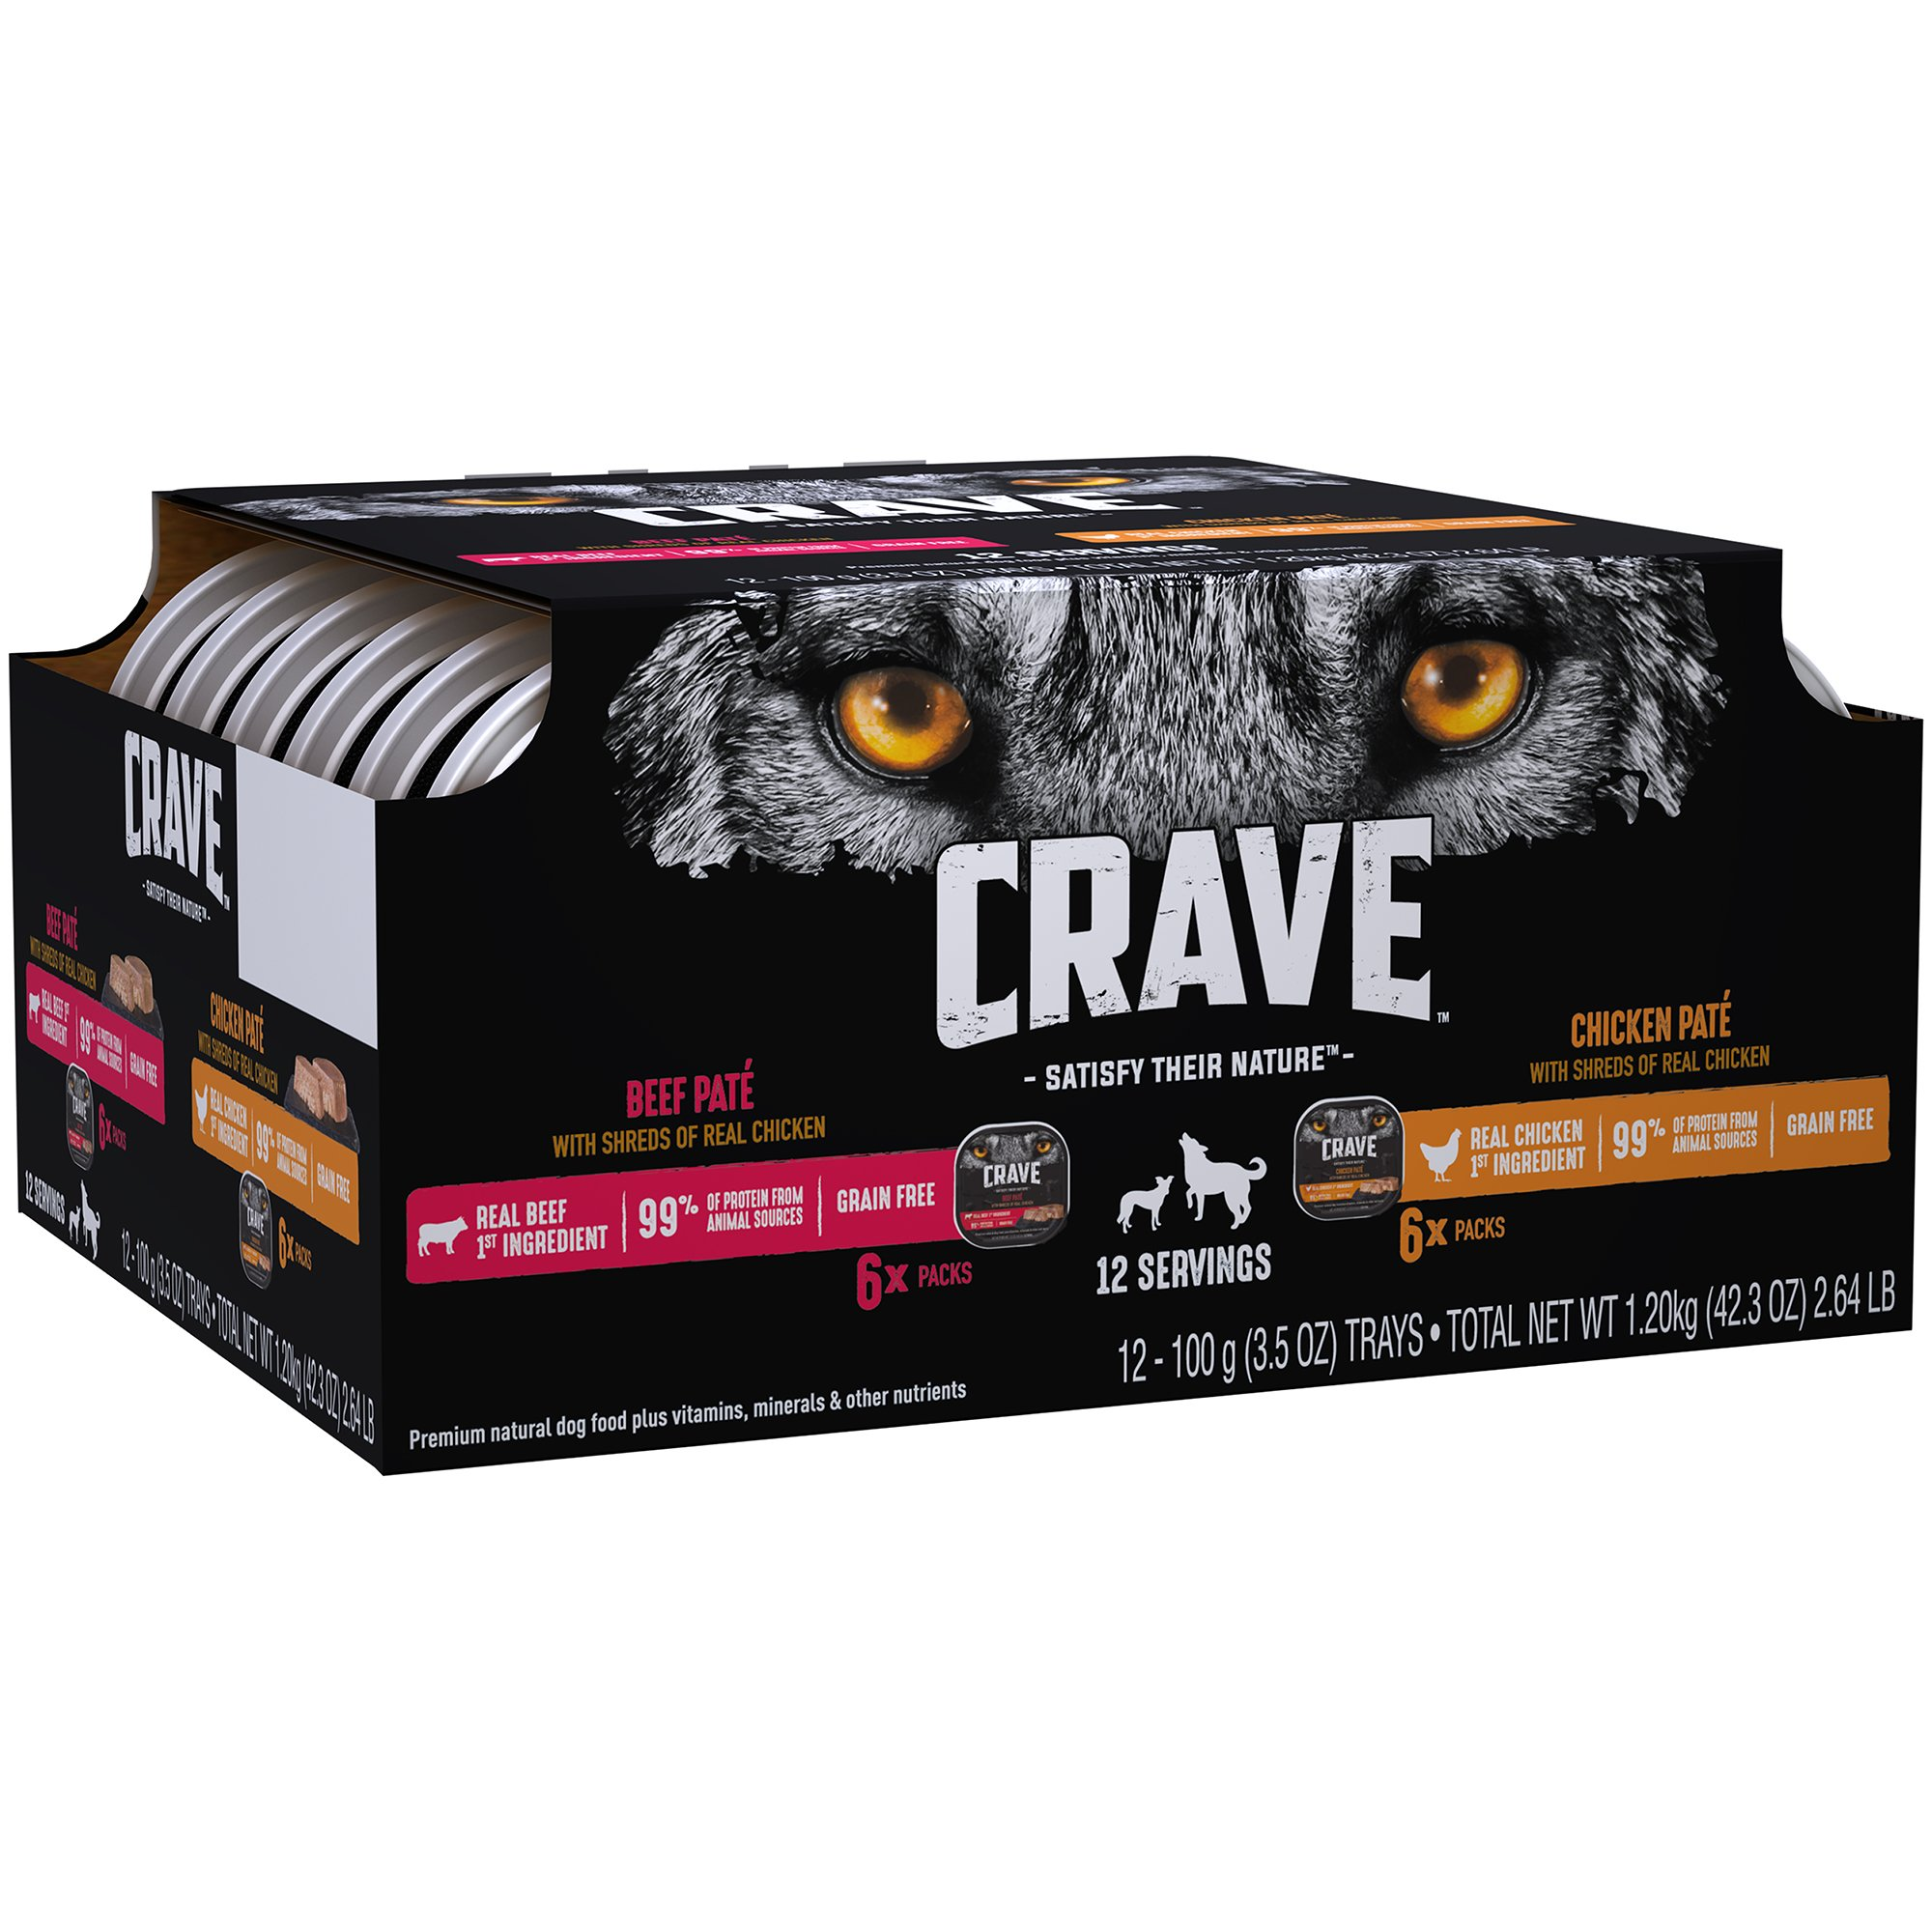 CRAVE High Protein Grain Free Adult Wet Dog Food Chicken Paté with Real Shreds of Chicken and Beef Paté with Real Shreds of Chicken, 3.5 oz. (2, 12-Count Packs)